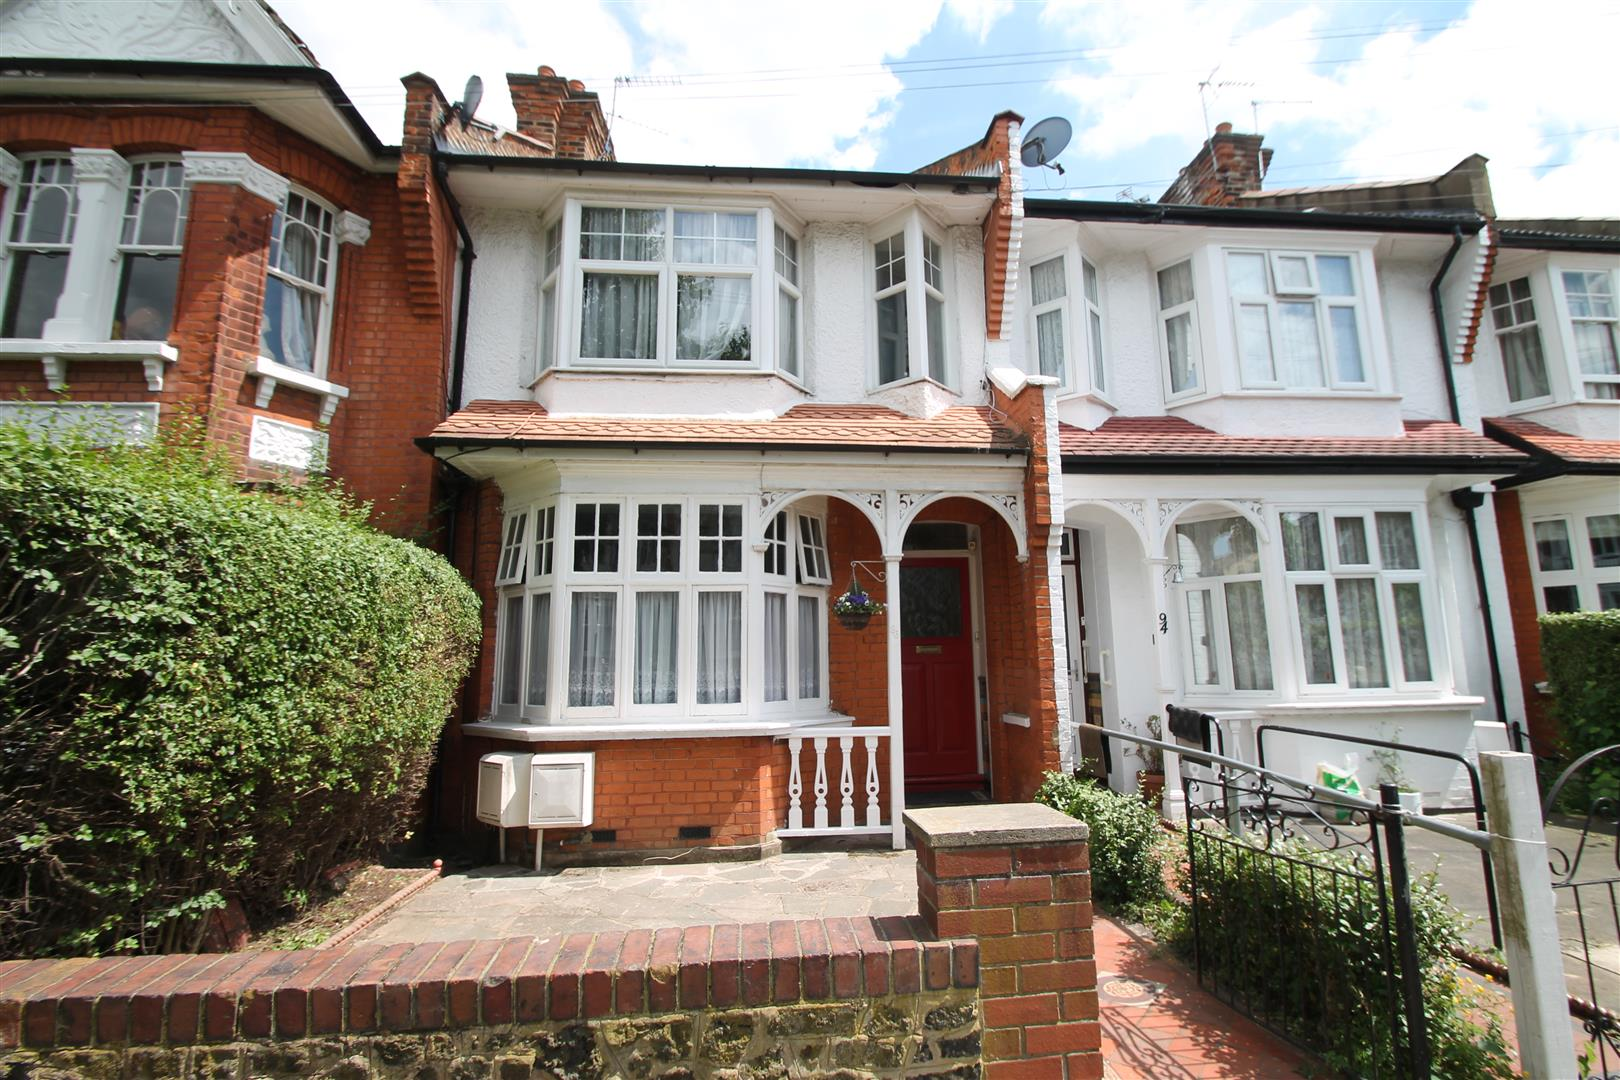 1 Bedroom Flat for sale in New River Crescent, Palmers Green, London N13 5RJ